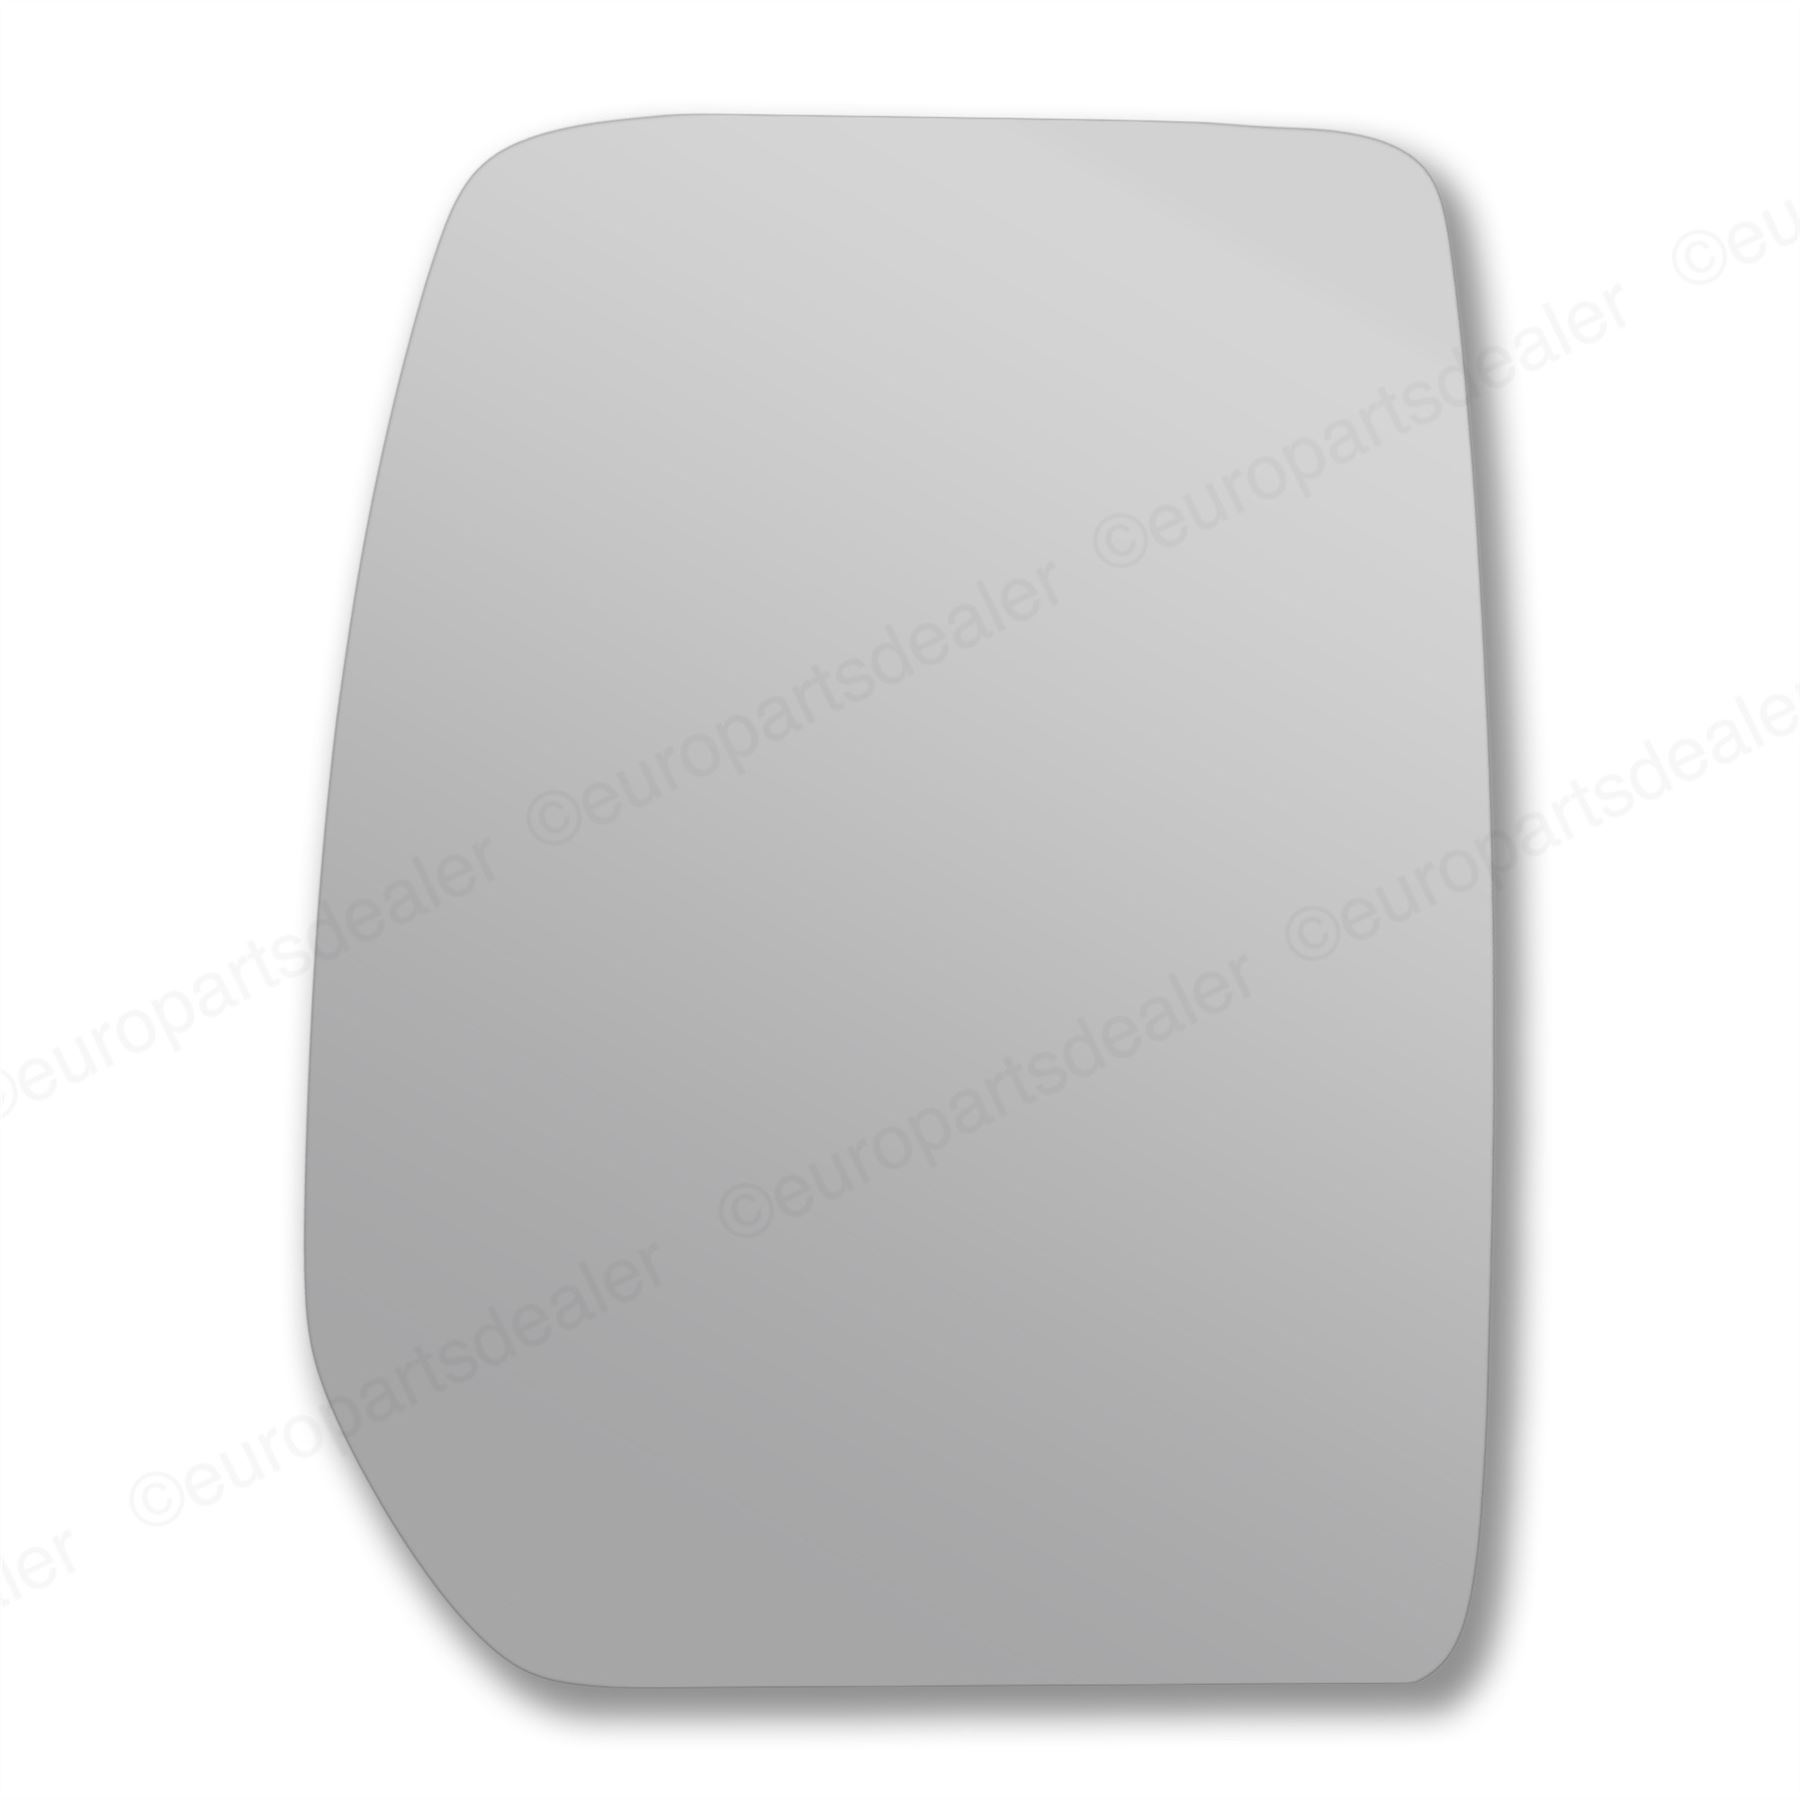 Right Driver side Convex Wing mirror glass for Ford Transit 2000-2014